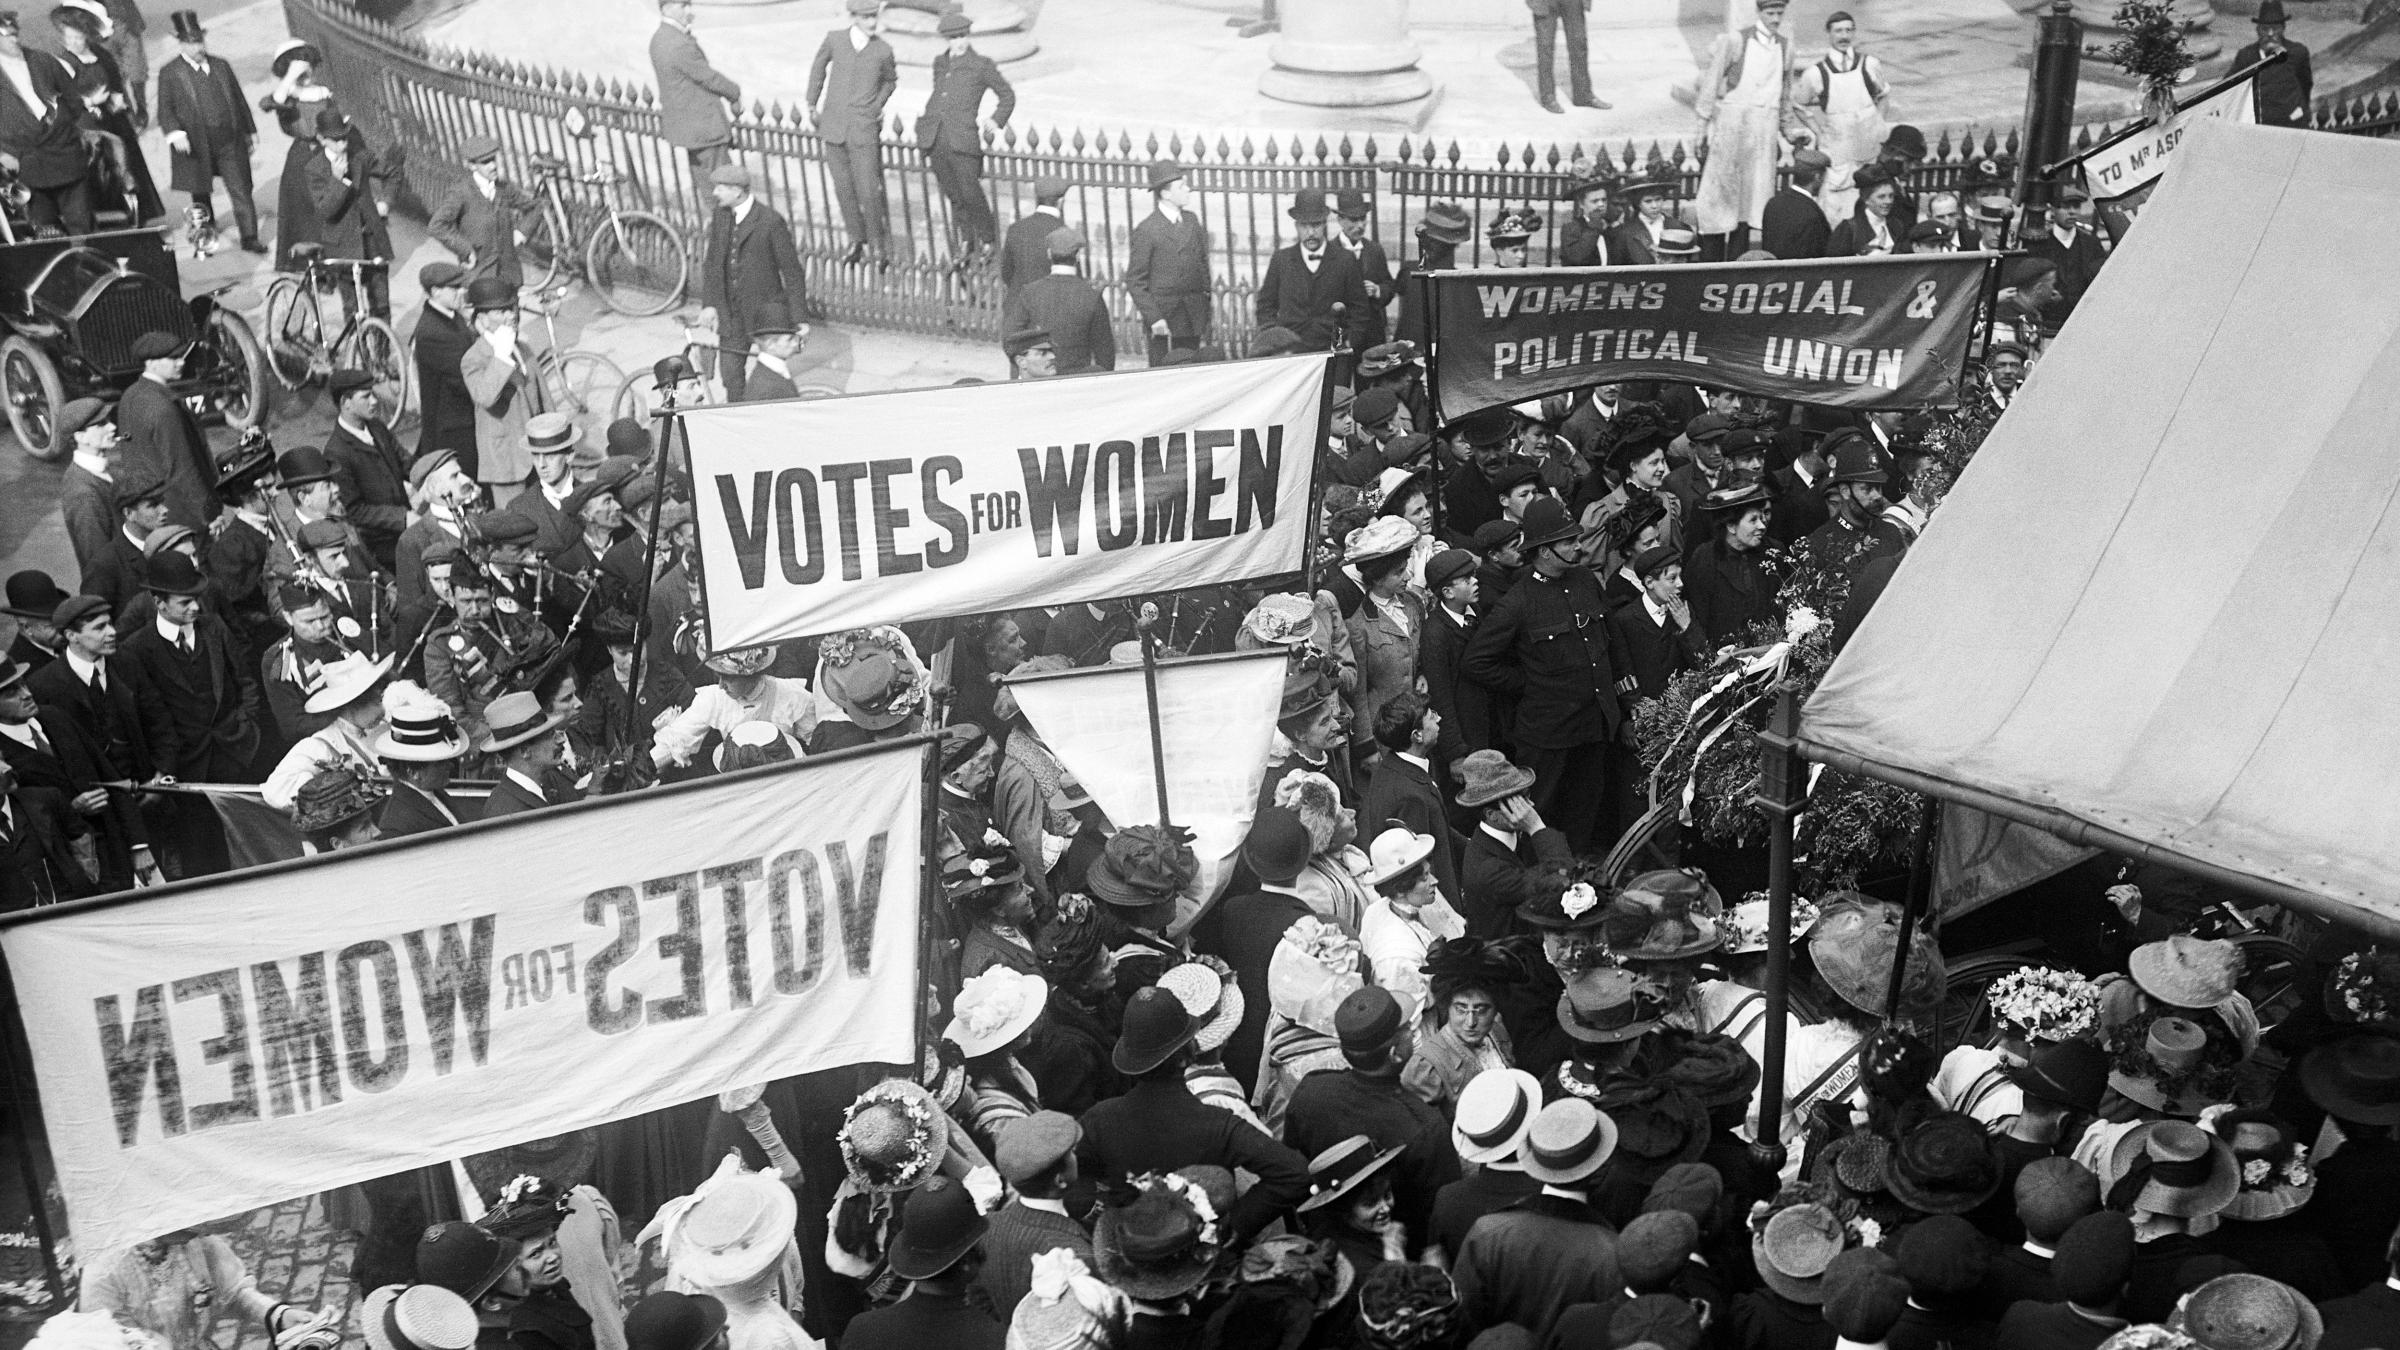 Sites of suffragette protest and sabotage recognised in official heritage list